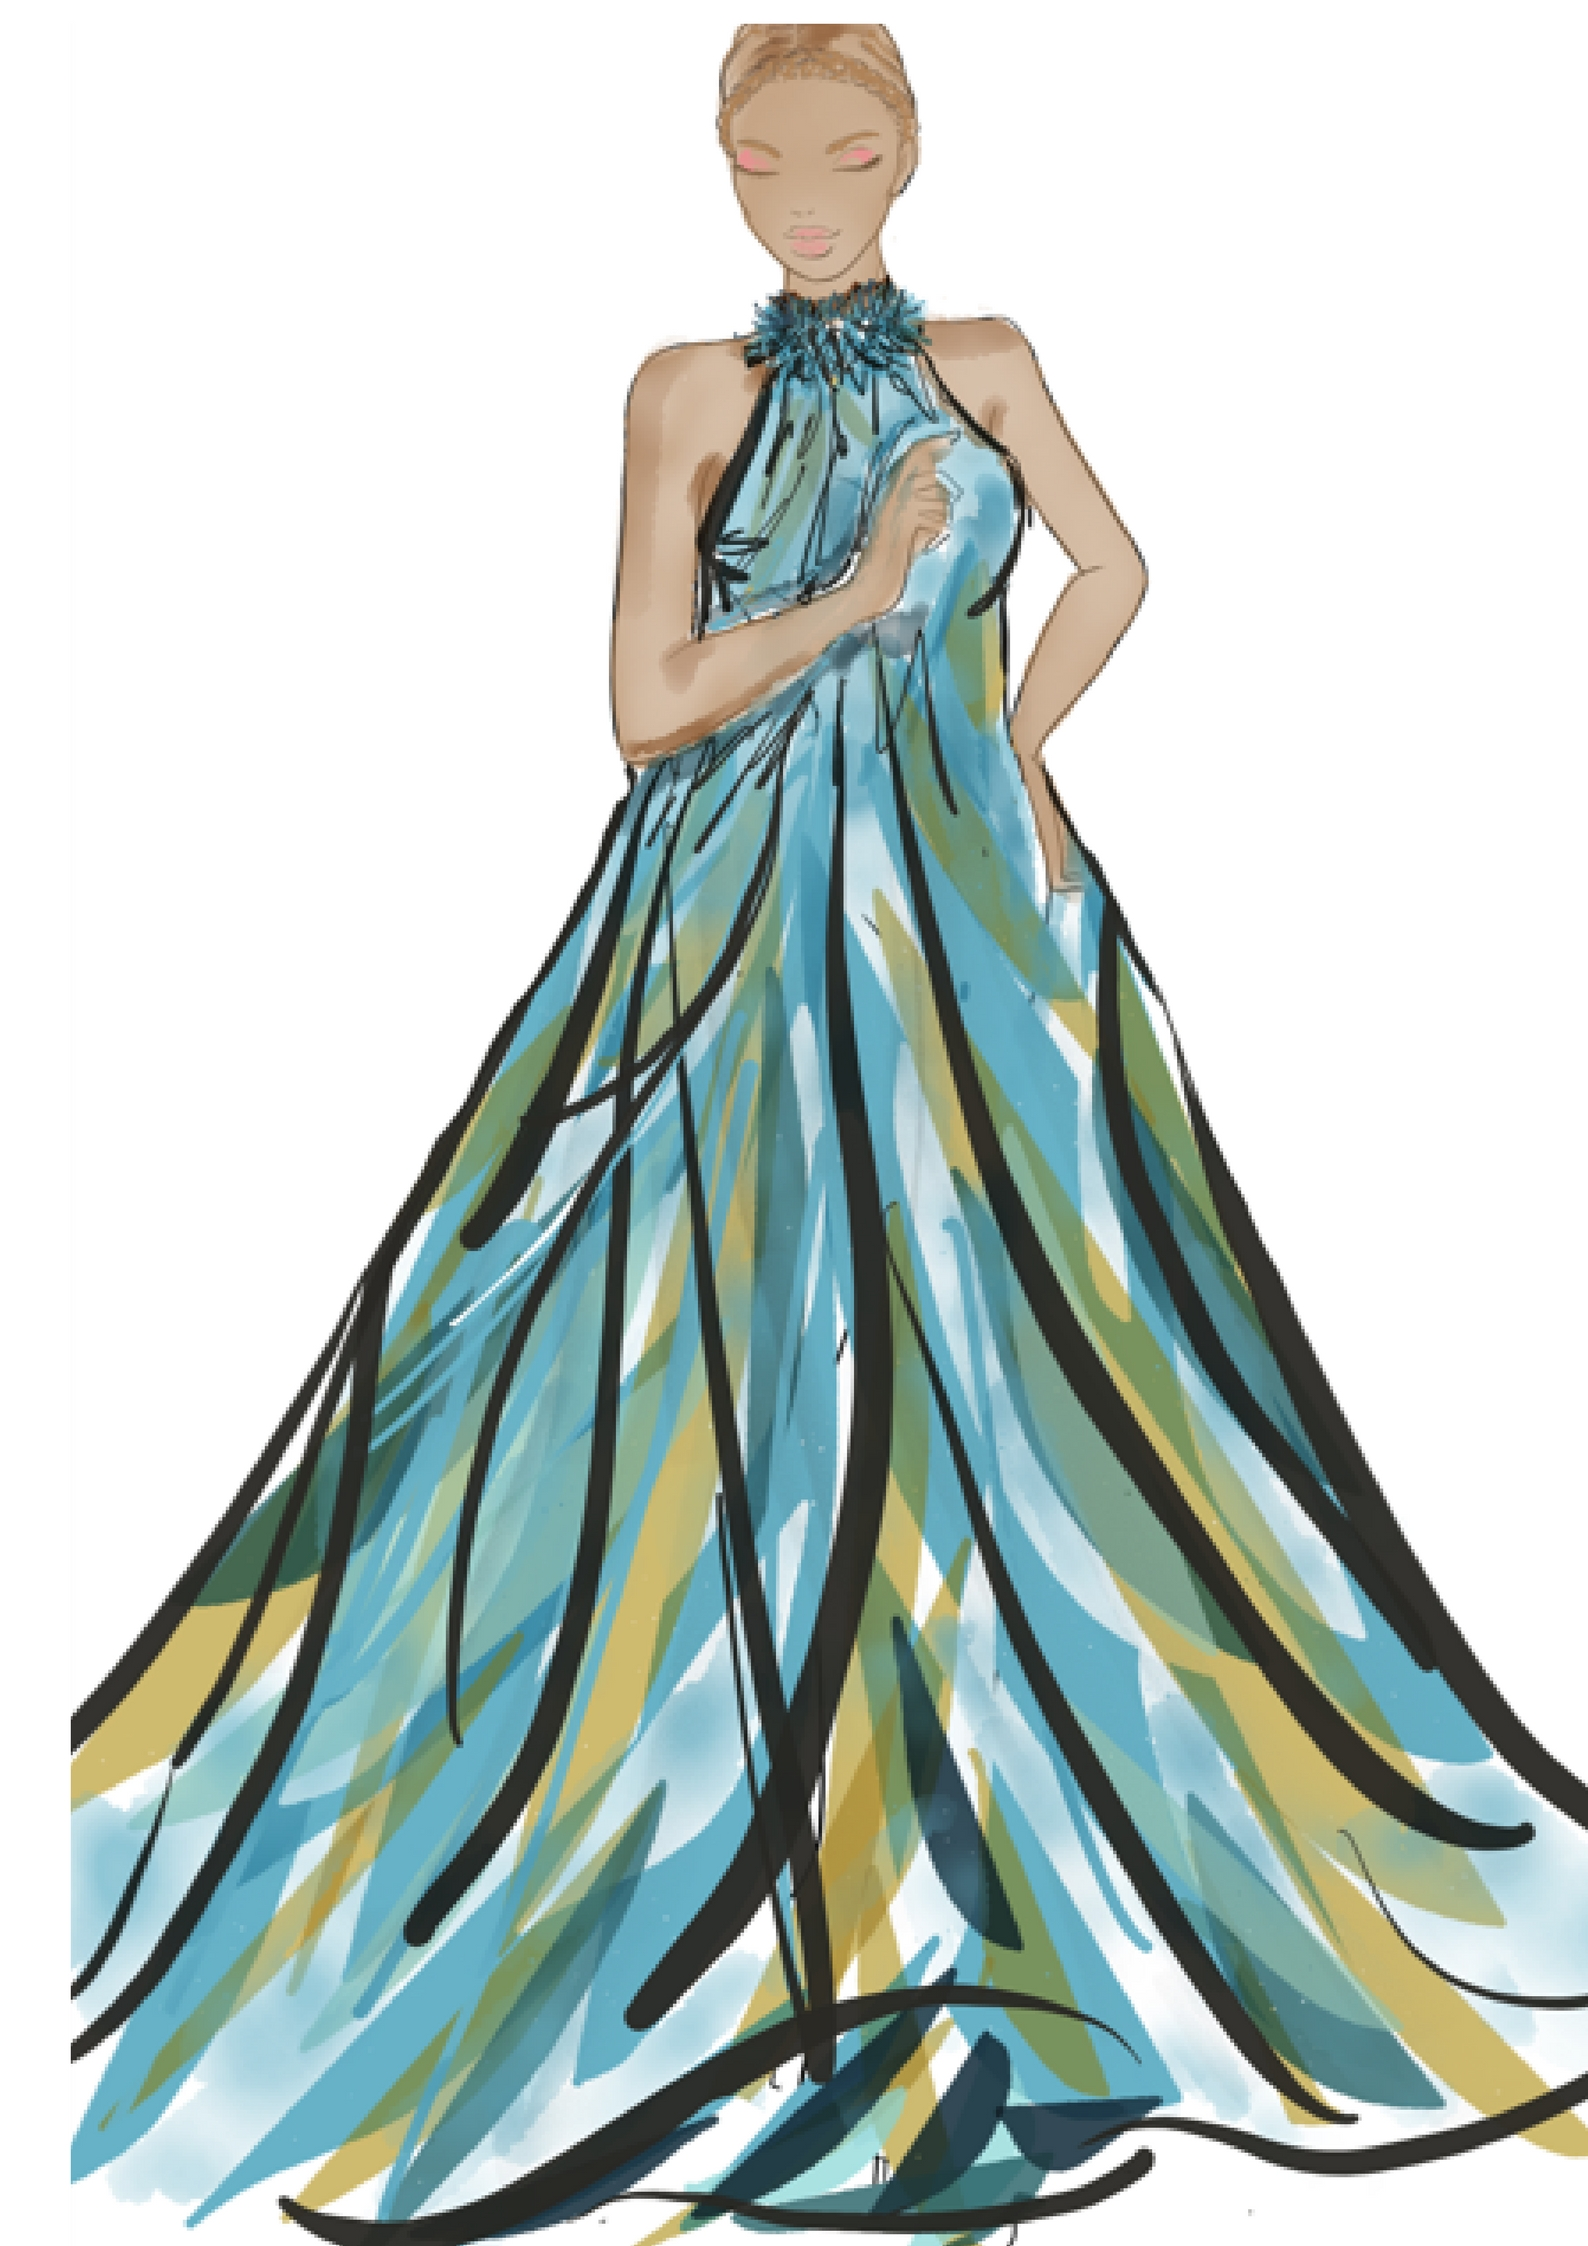 My original sketch was a long floor length full dress but due to the limited amount of lace fabric I had to work with I decided to alter the design. Oh and I'm no illustrator but I get by! LOL